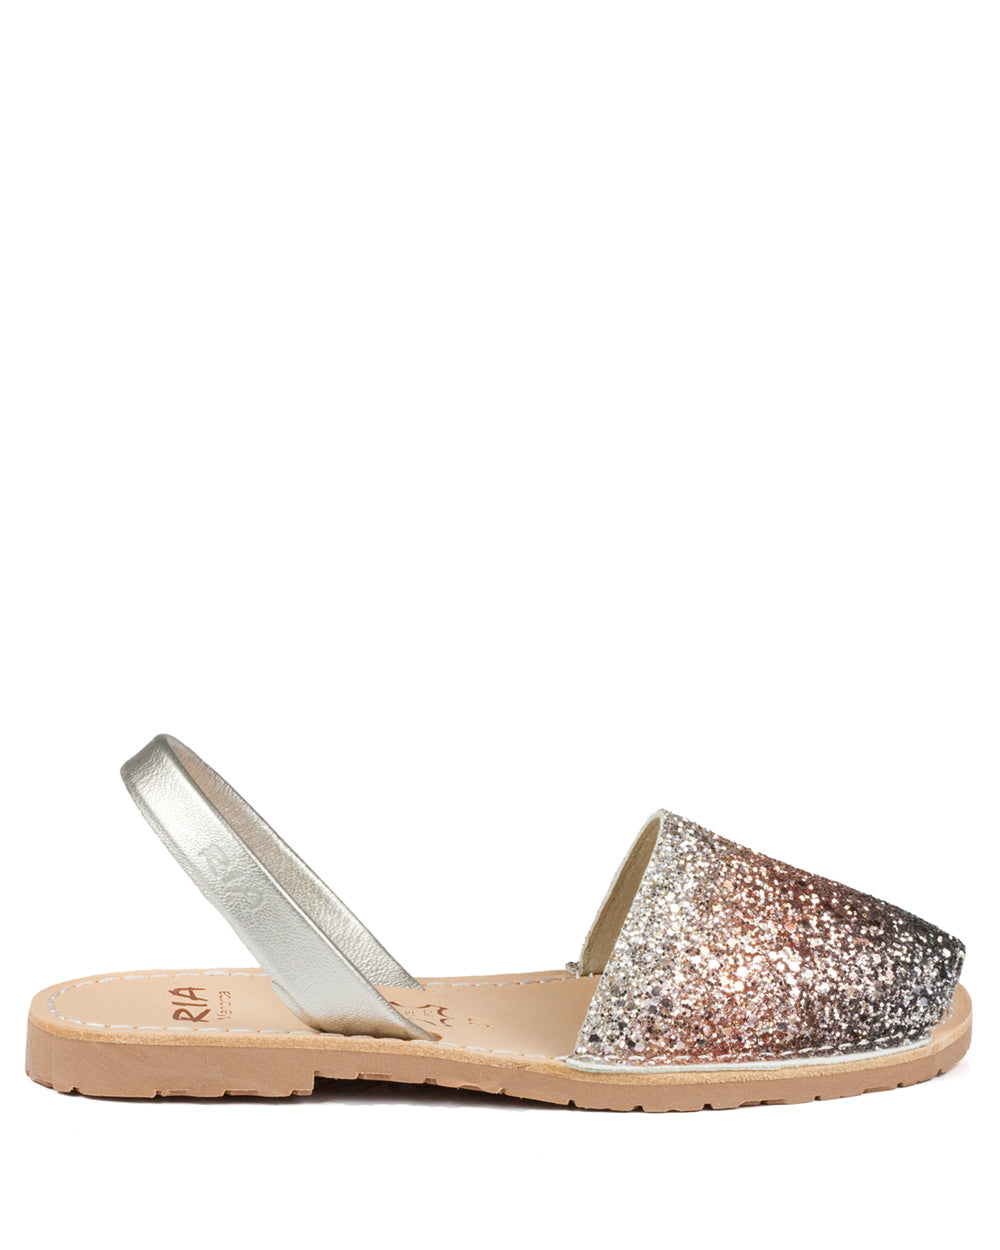 Menorcan Sandals Pink Glitter - The Espadrille Hut